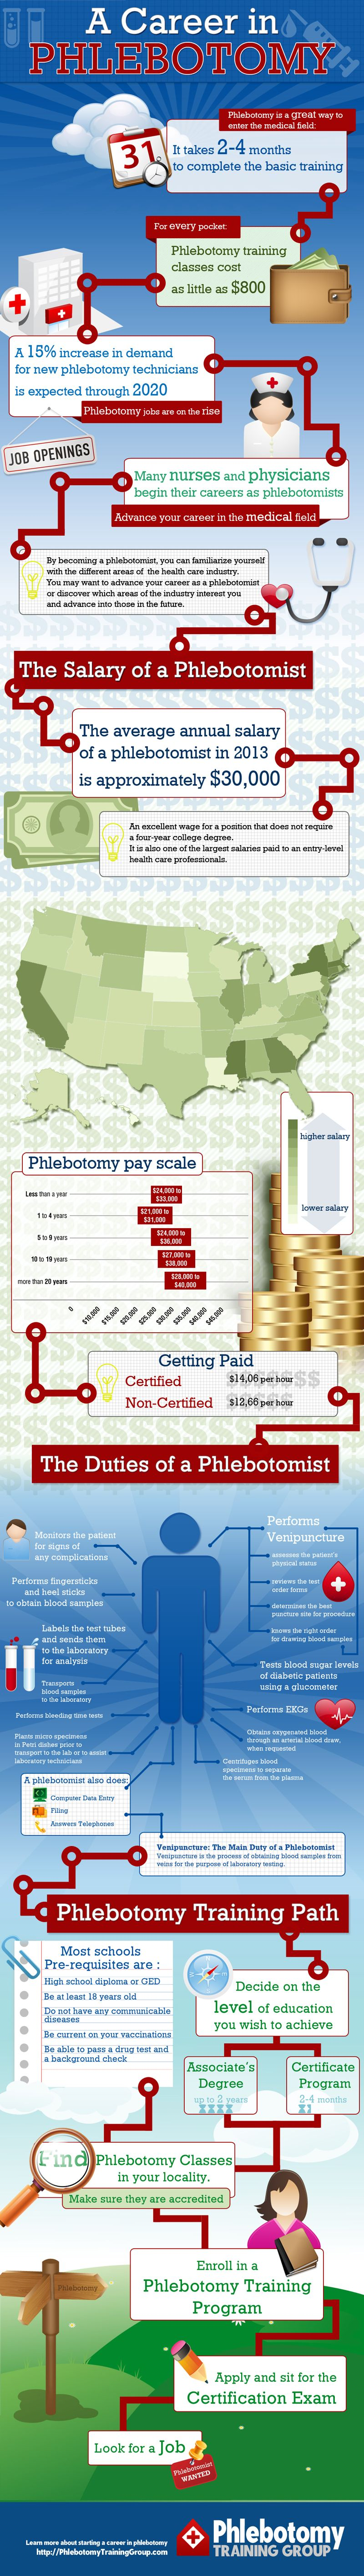 Infographic A Career In Phlebotomy Ma Pinterest Phlebotomy